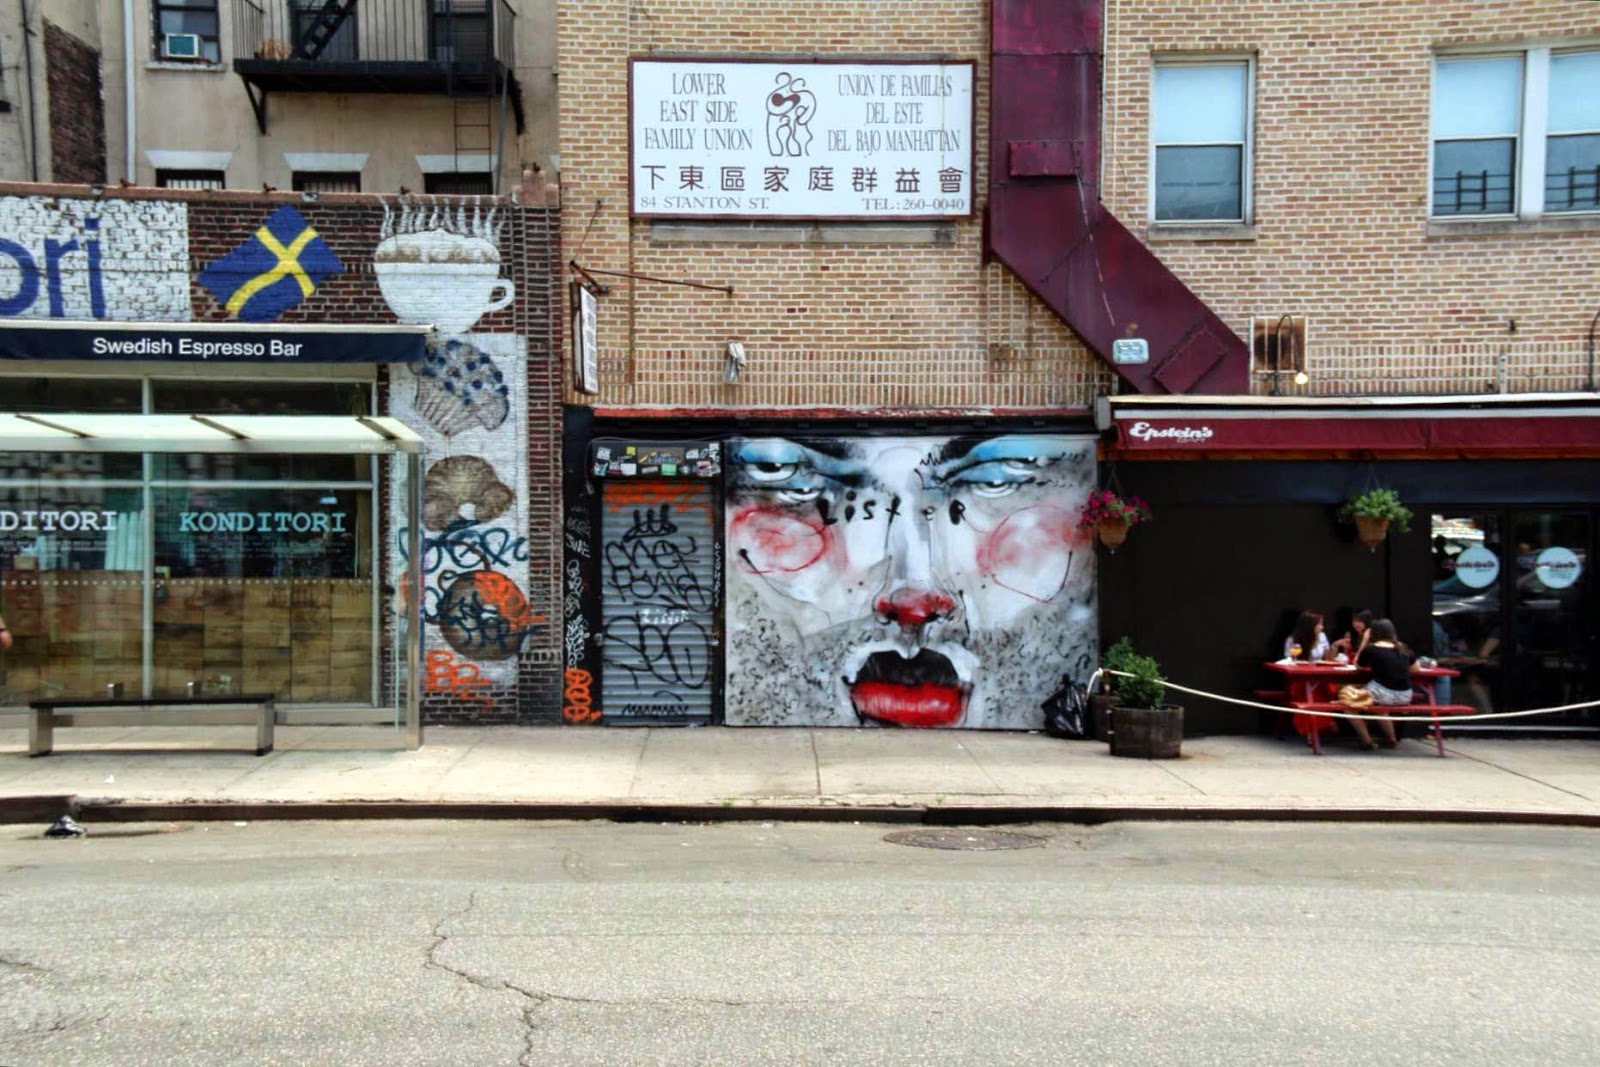 Tivoli Ny Street Painting Festival Lister New Mural Lower East Side New York City